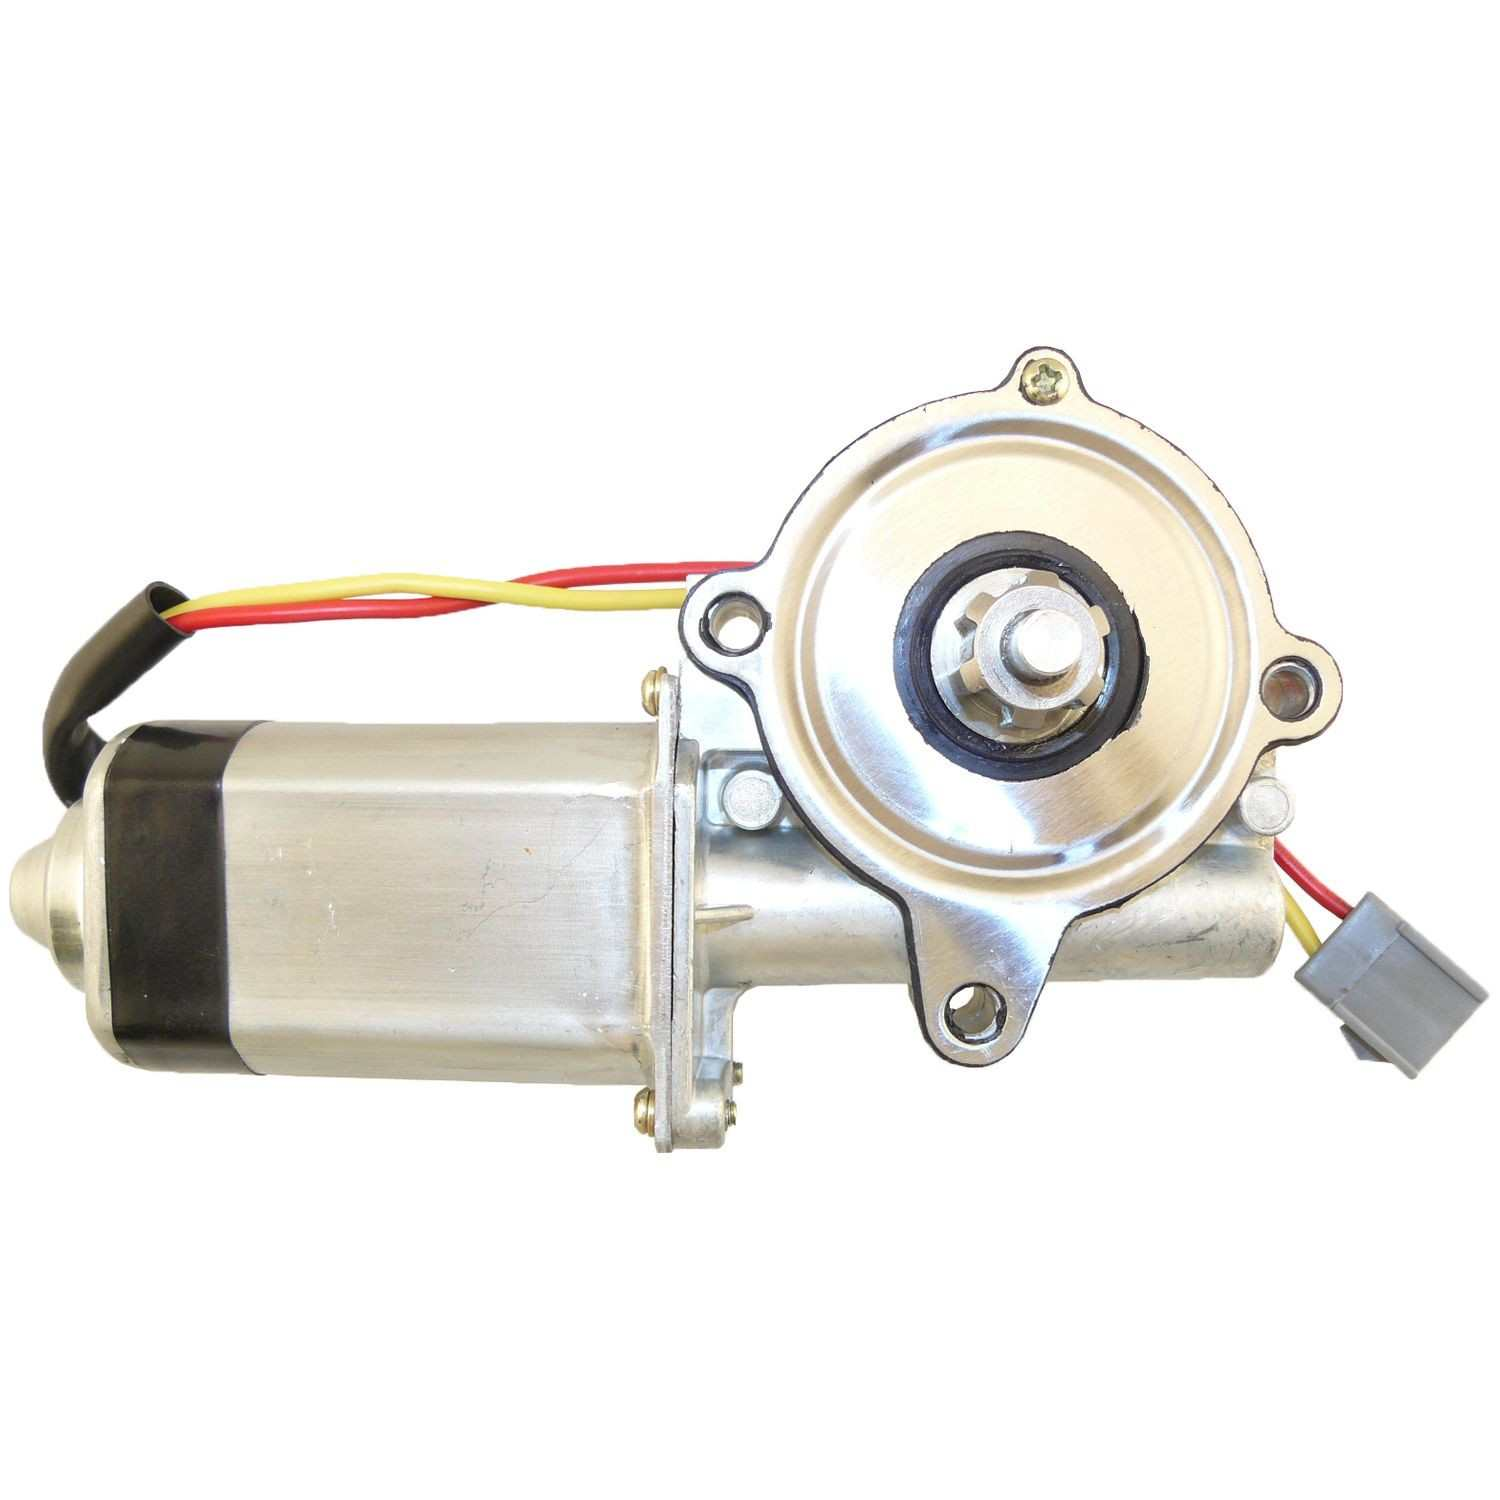 MAGNETI MARELLI OFFERED BY MOPAR - Power Window Motor (Front Right) - MGM 1AMWM83292